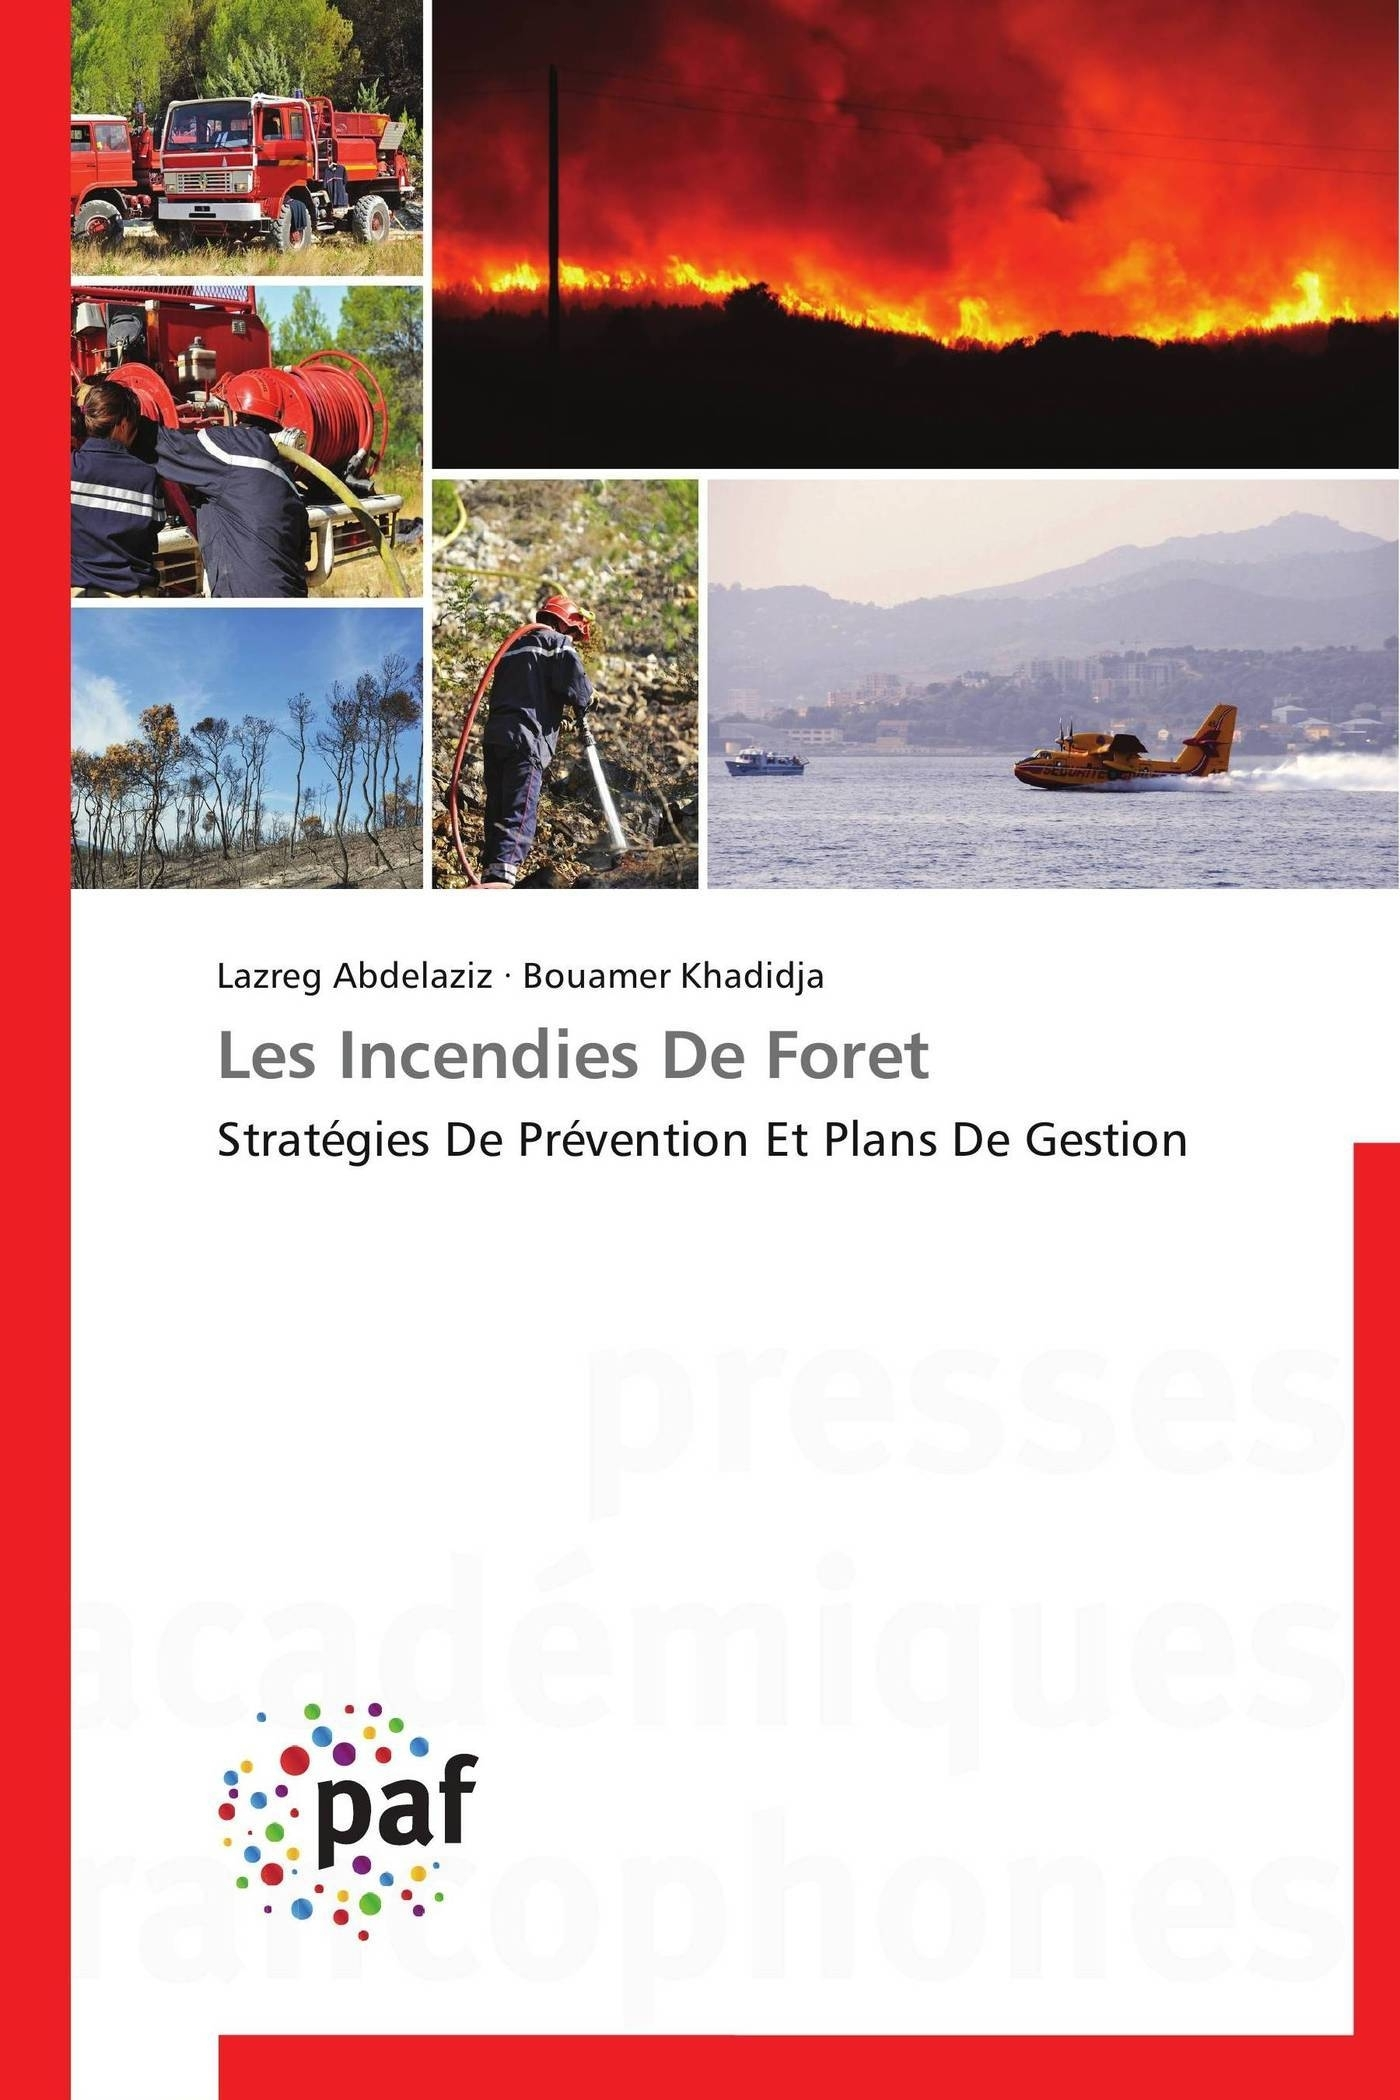 LES INCENDIES DE FORET